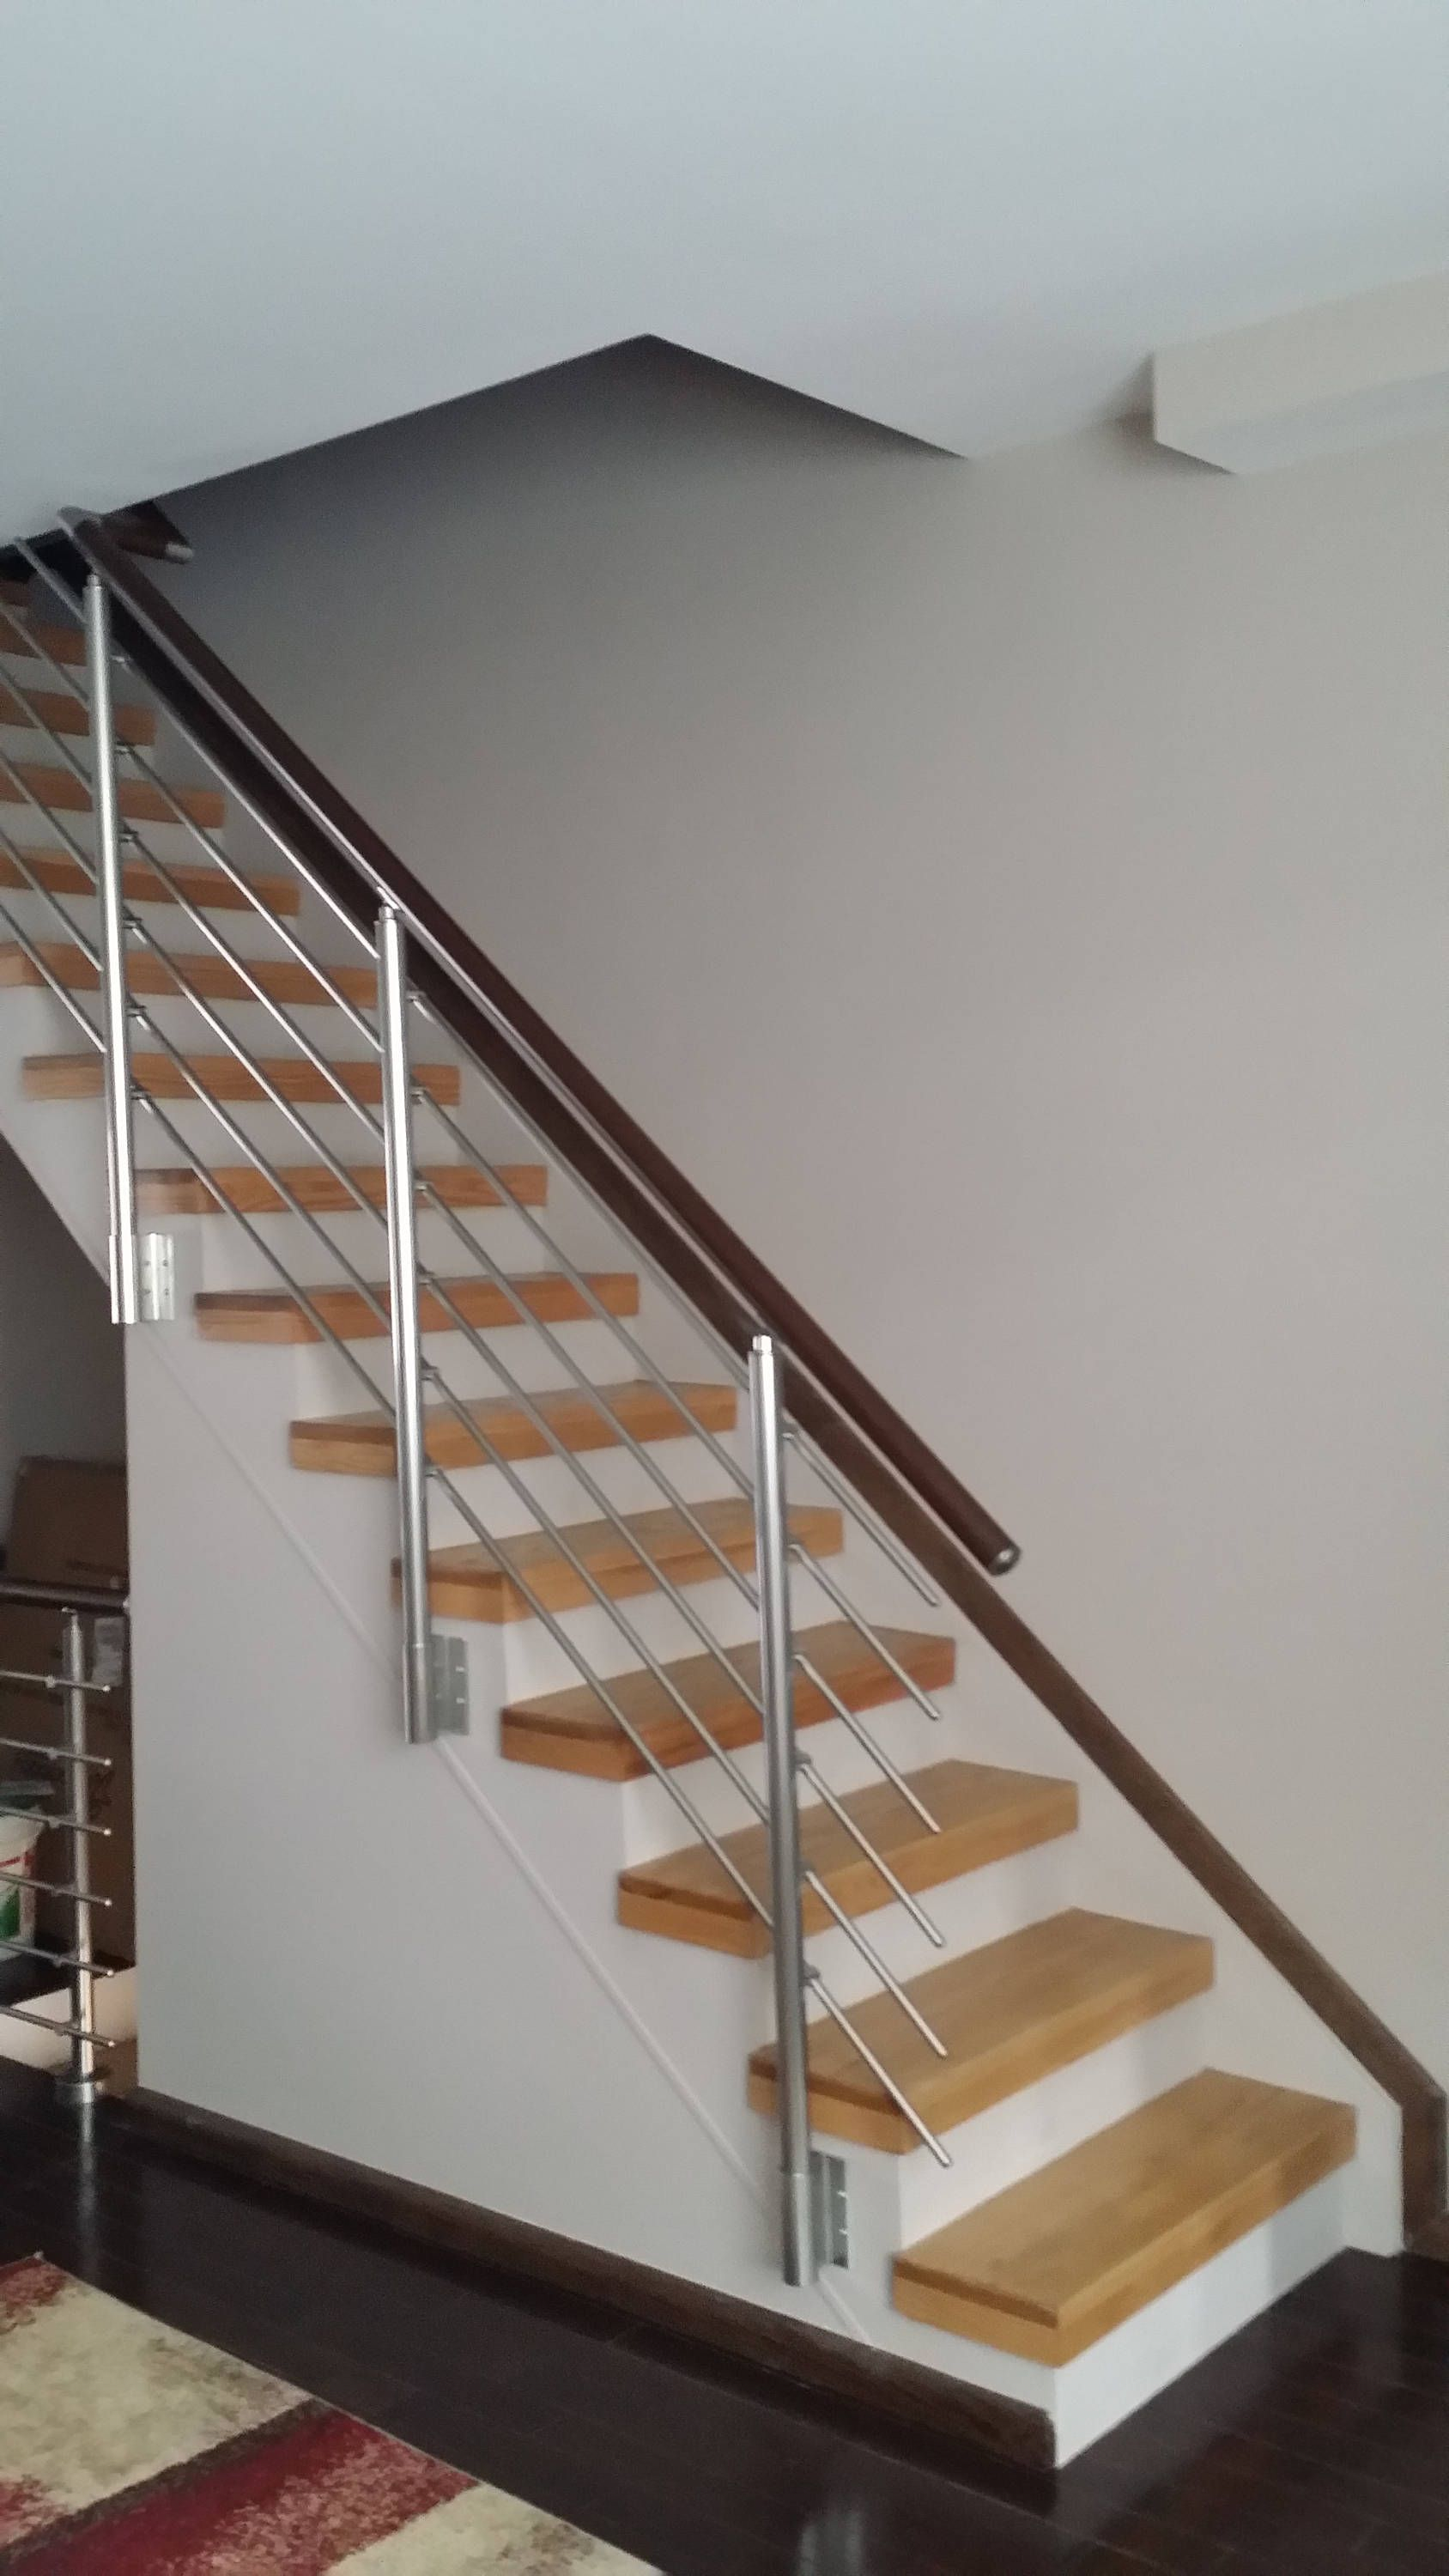 Modern Stairs Balcony Hand Rail Staircase Railing Kit - Aluminium Side Connected